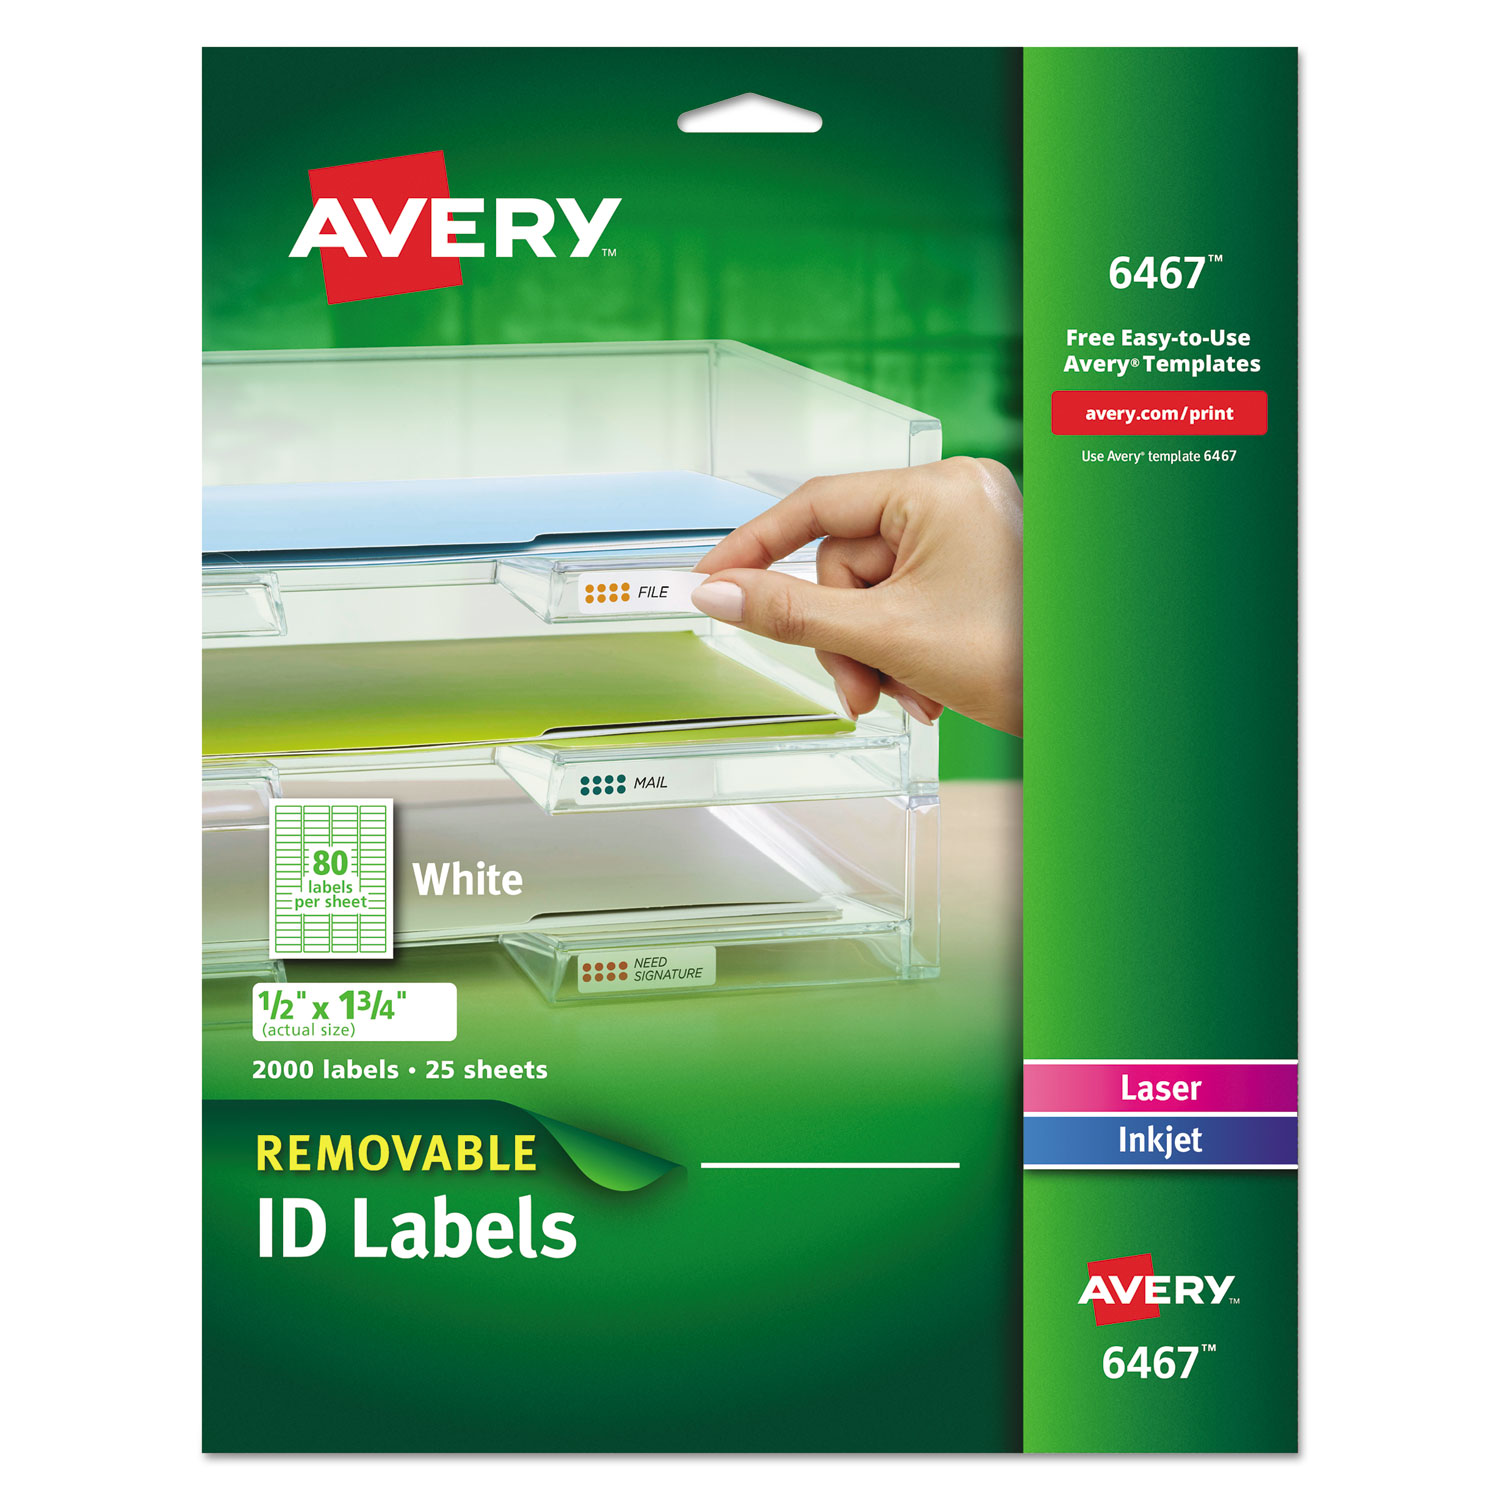 Removable Multi-Use Labels, Inkjet/Laser Printers, 0.5 x 1.75, White, 80/Sheet, 25 Sheets/Pack AVE6467